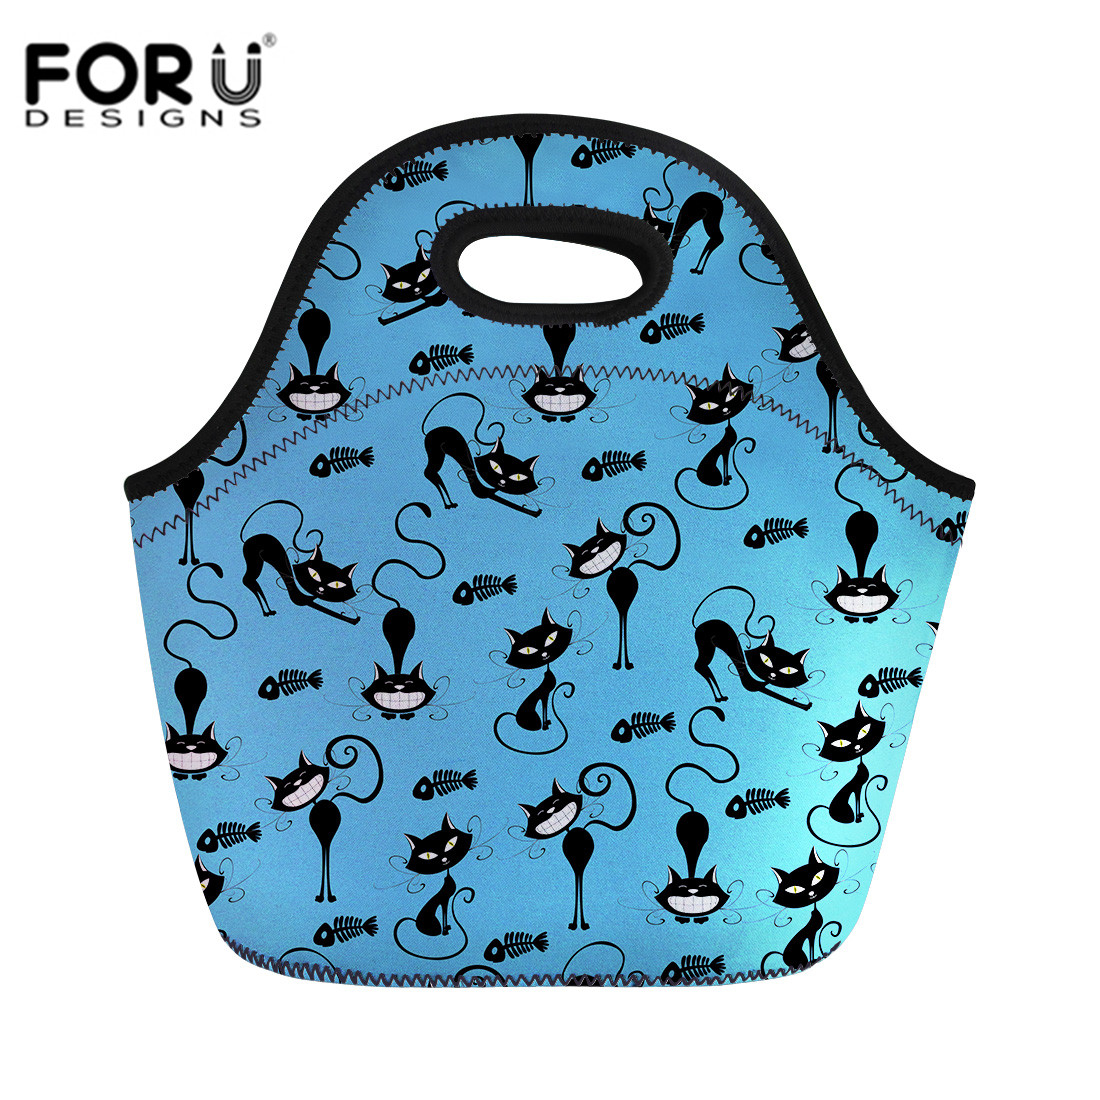 FORUDESIGNS Handbags Black Art Cats Printed Picnic Bags Thermal Insulated Neoprene Lunch Bag Women Kids Lunch Bags Dropshipping